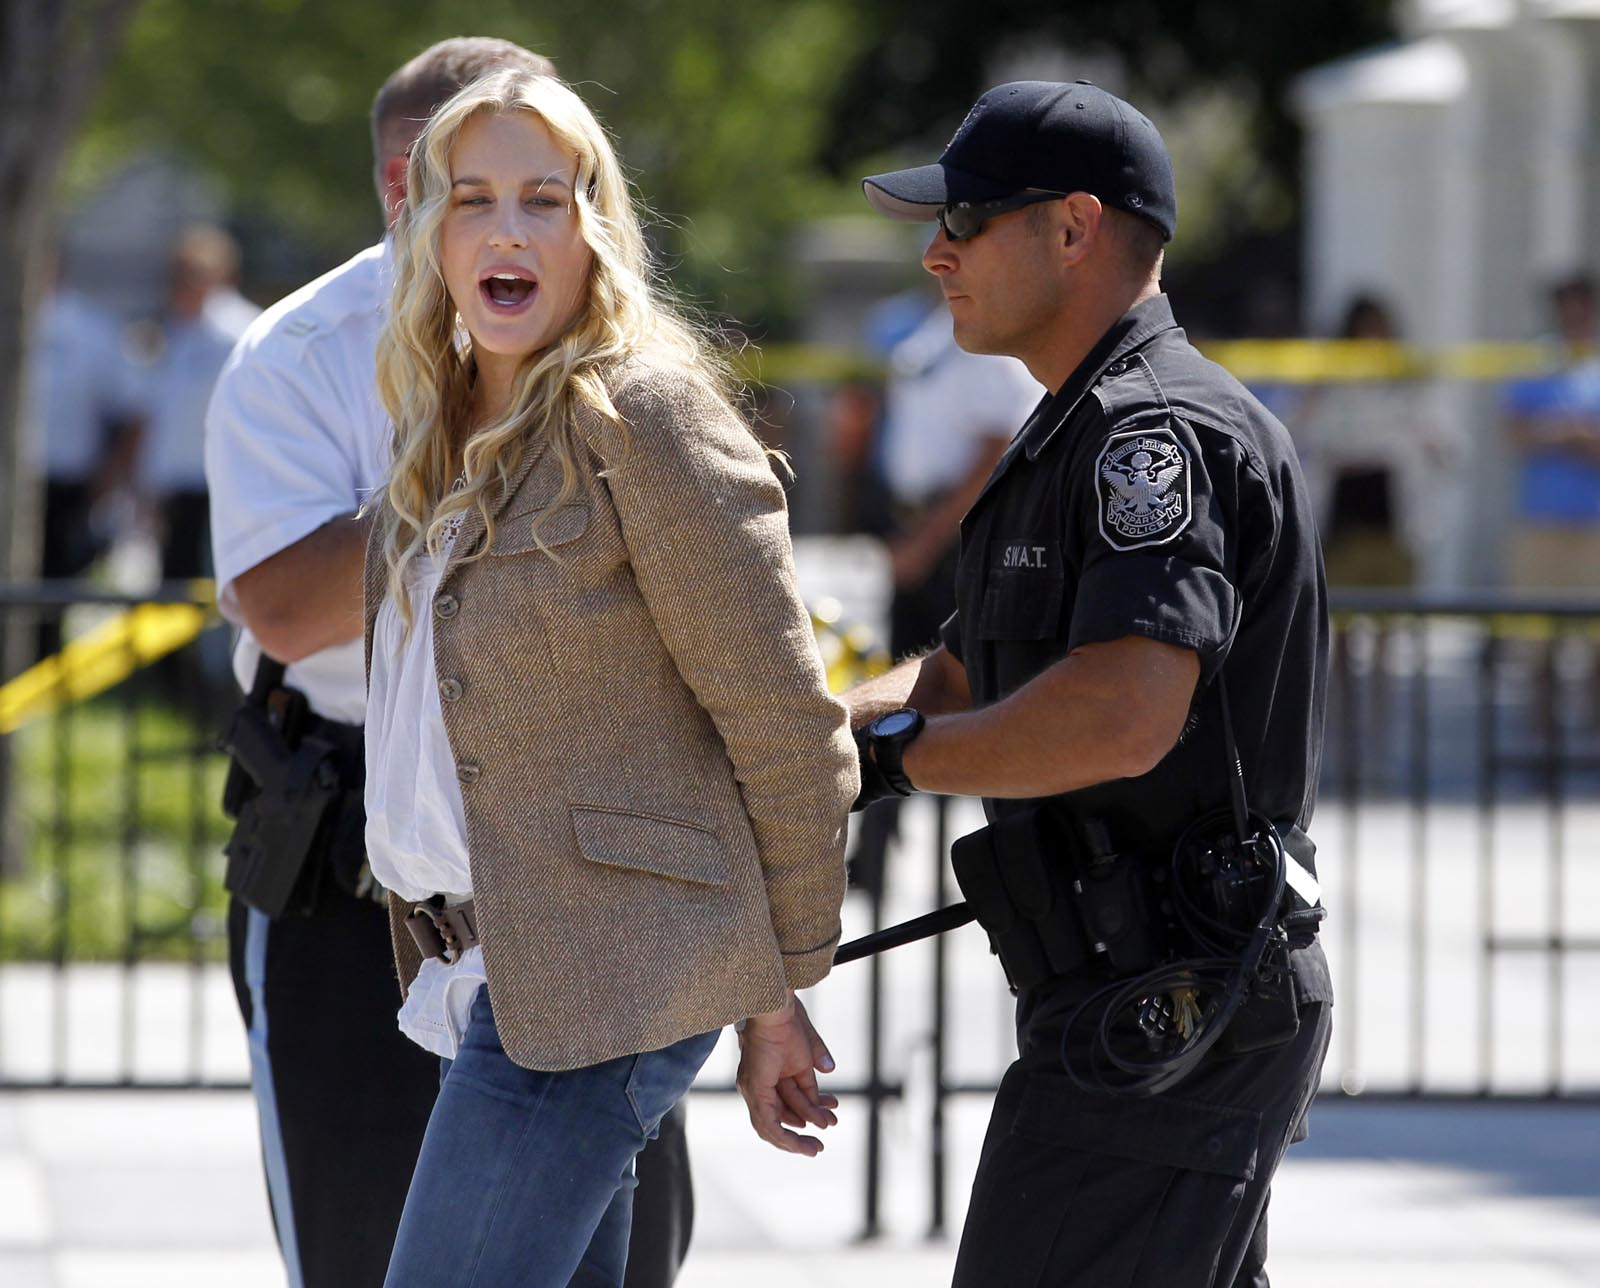 http://3.bp.blogspot.com/-Hw_z-97W6Zg/T3GnHRahA6I/AAAAAAAACdQ/sQ33Yp320gg/s1600/daryl-hannah-arrested-at-protest-data.jpg